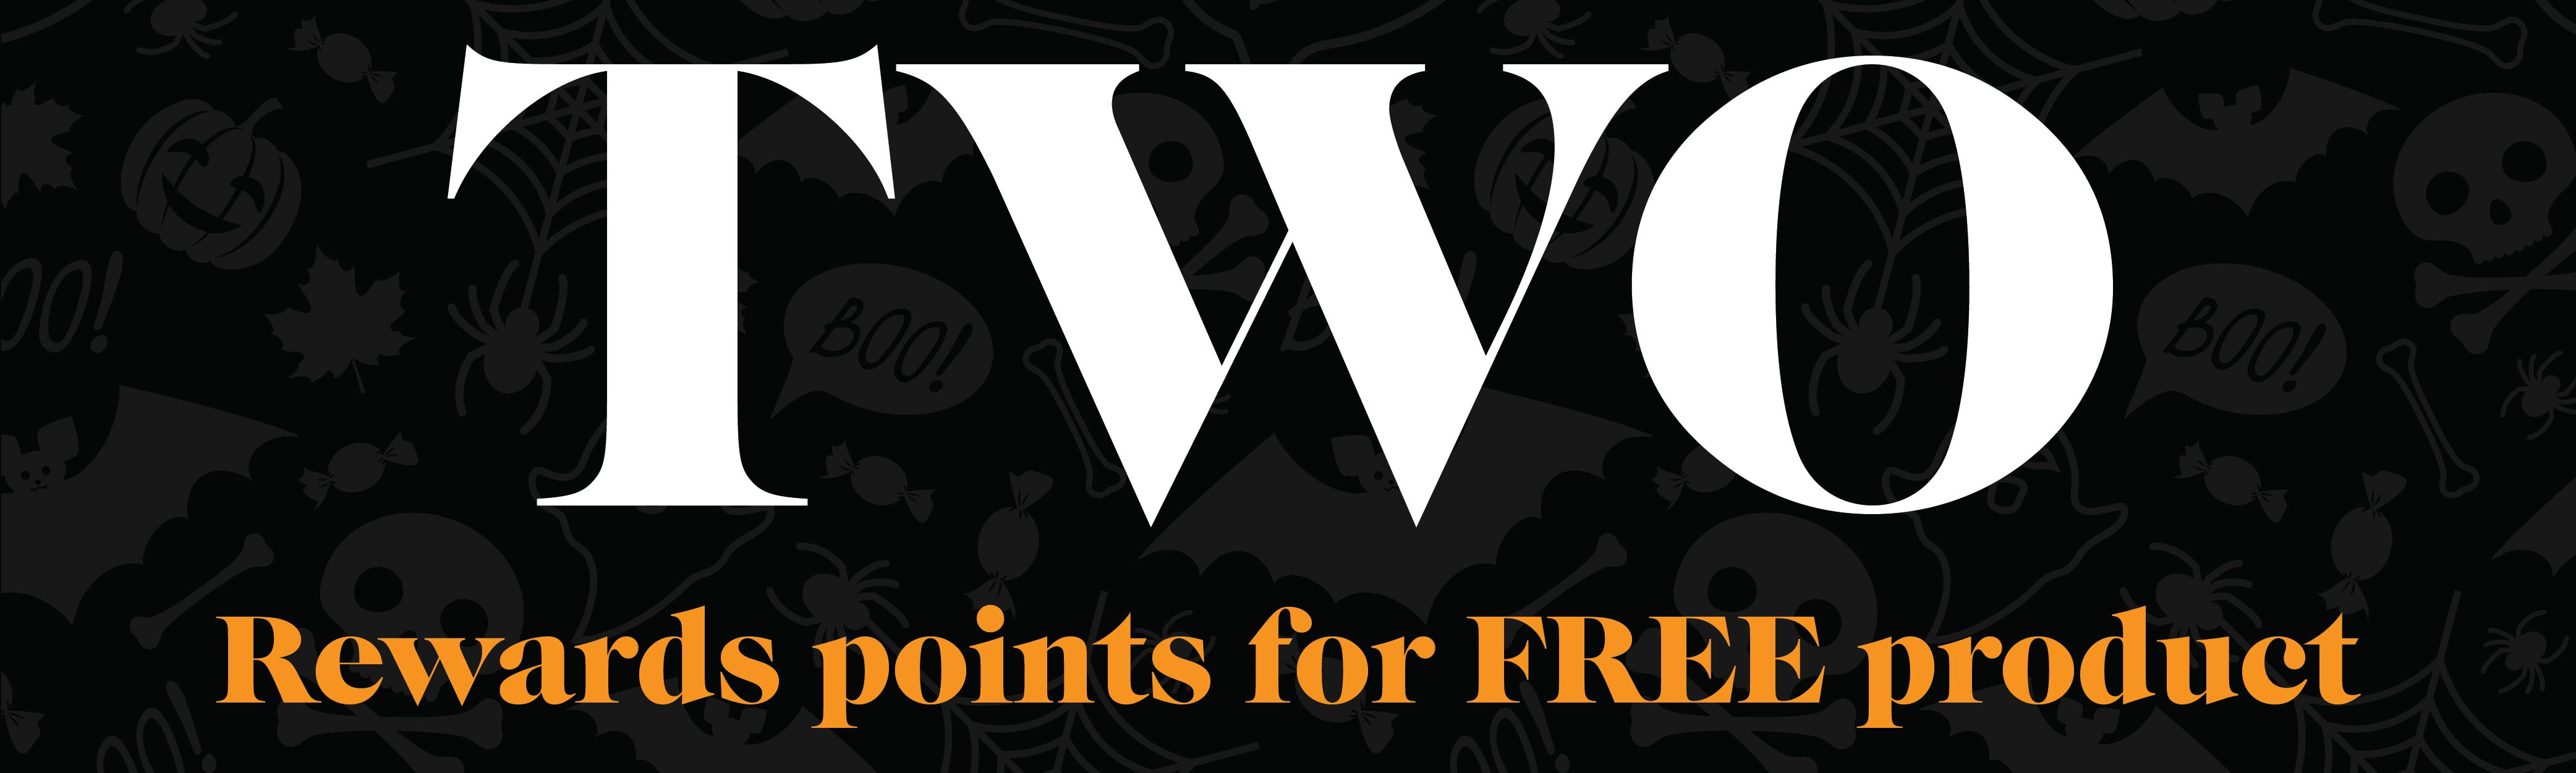 Rewards Points for Free Product